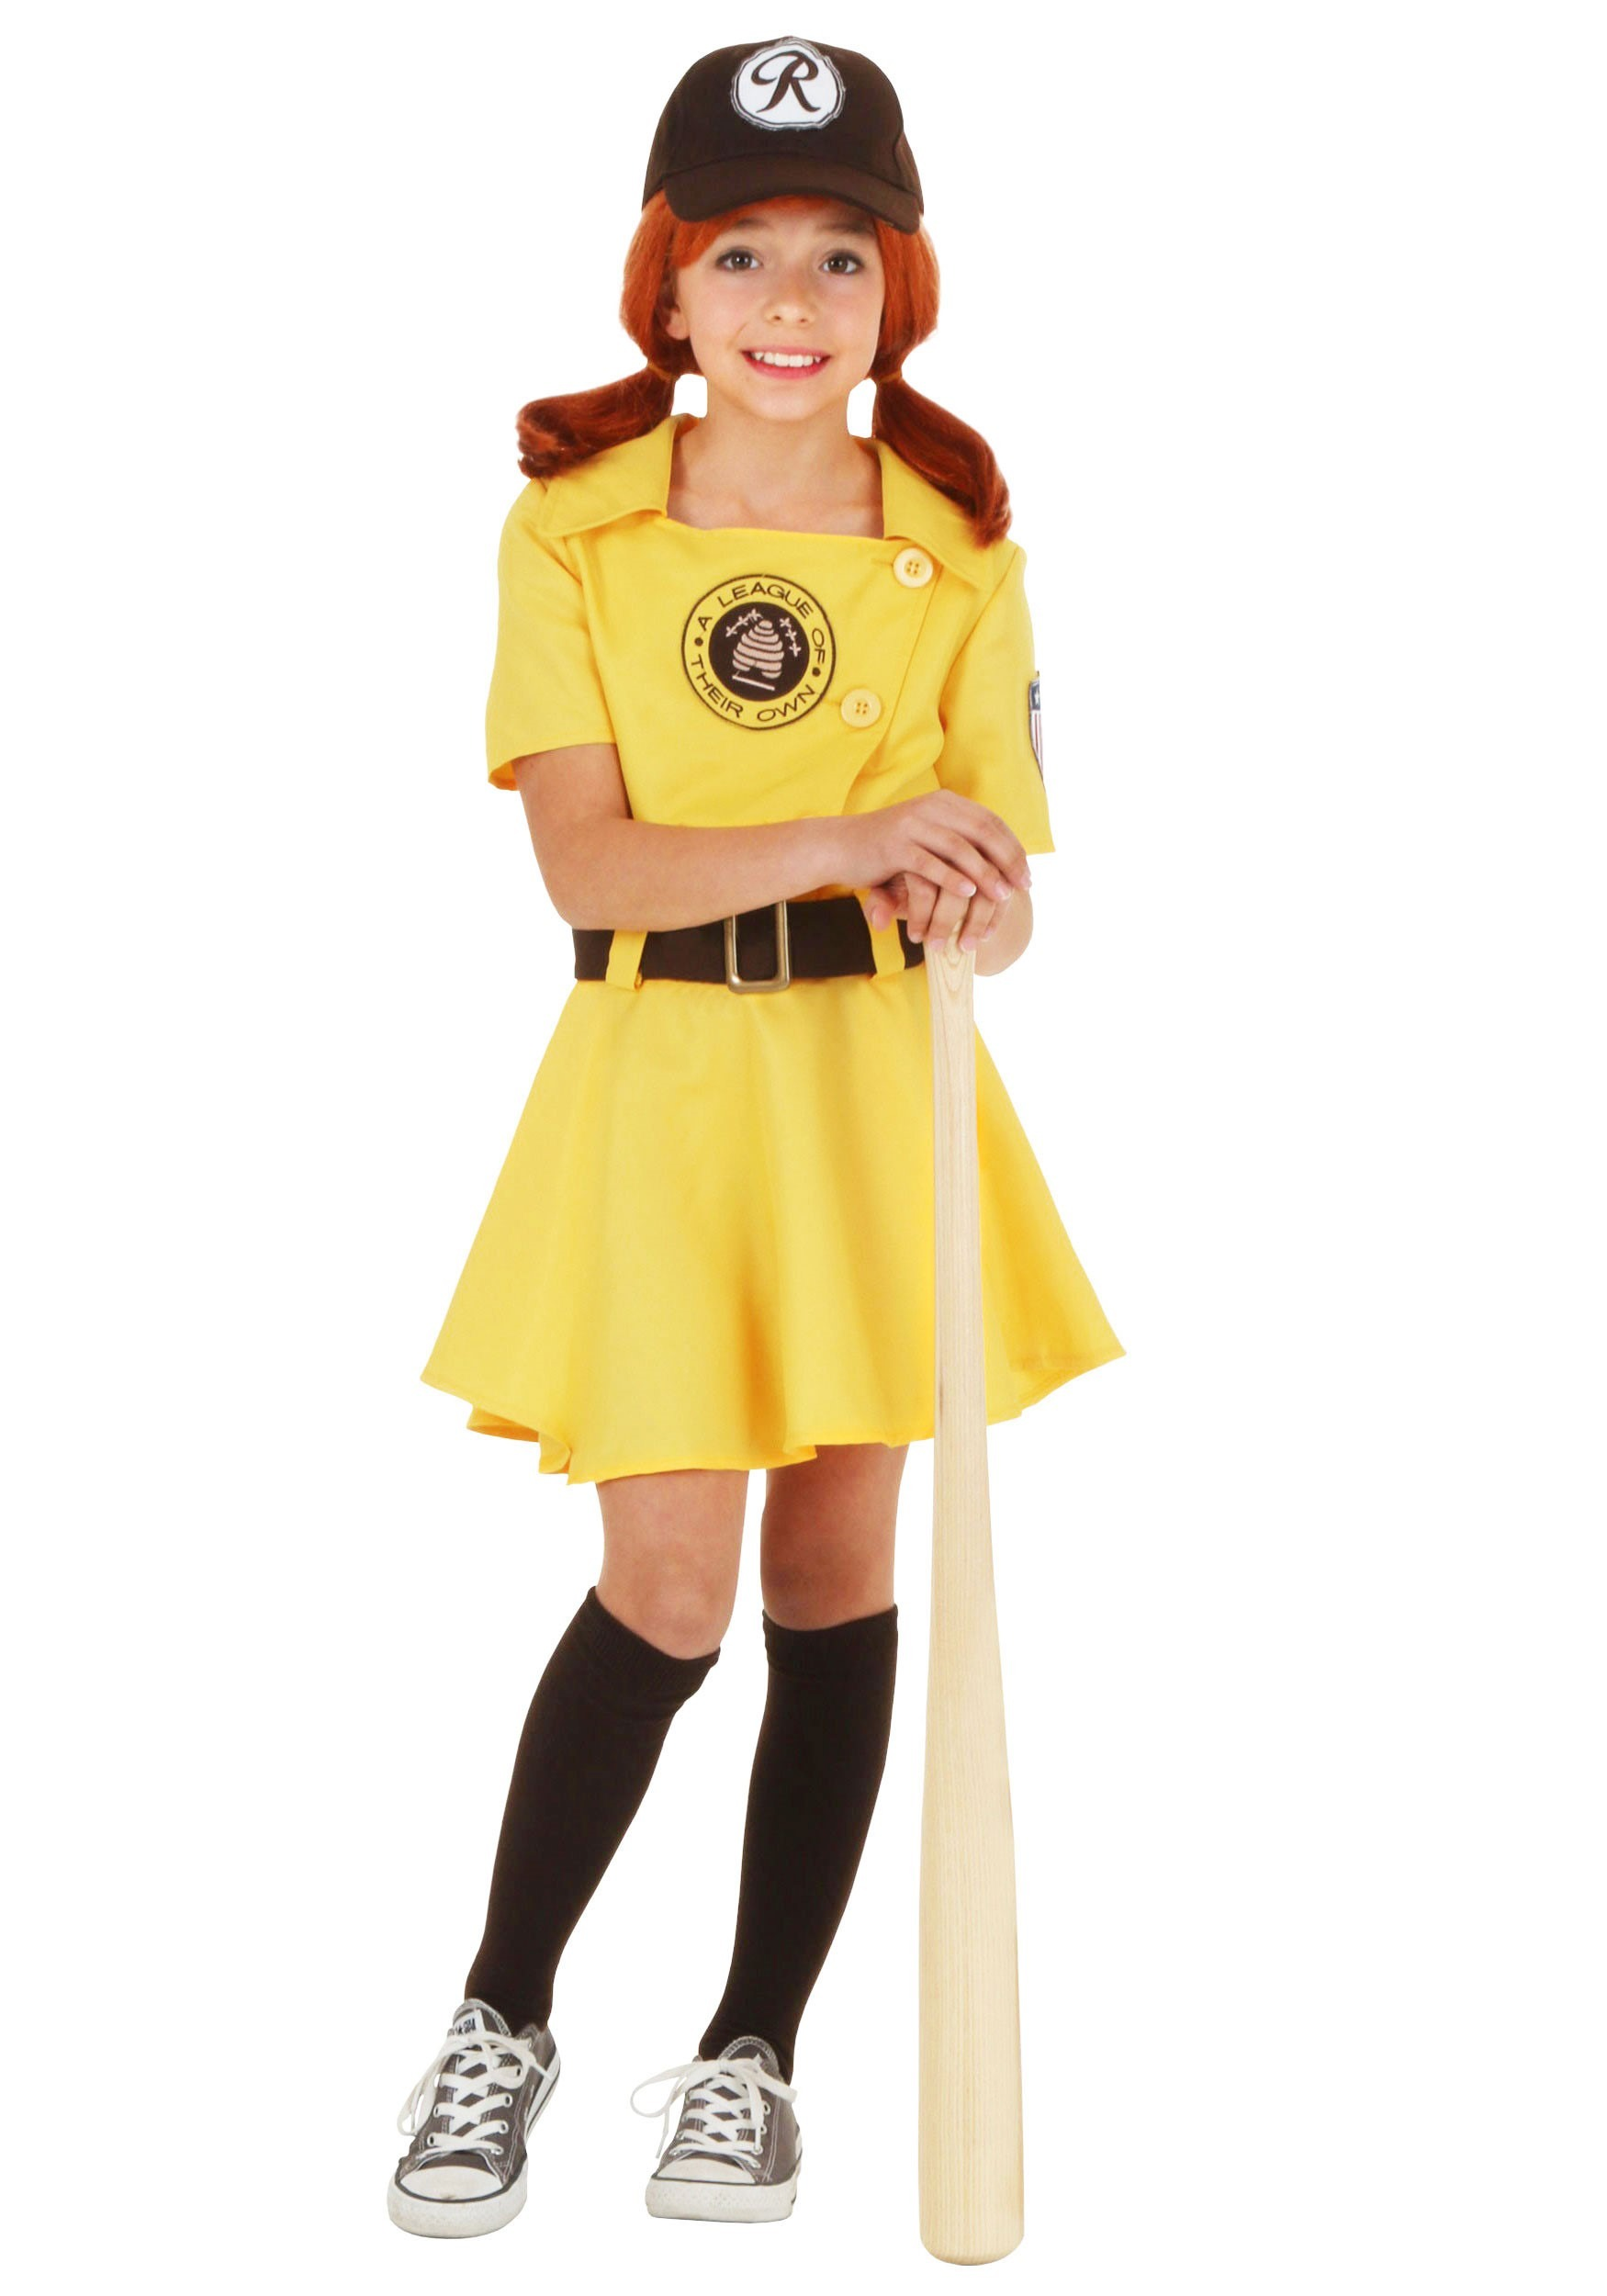 Girls A League of Their Own Kit Costume | Baseball Costume